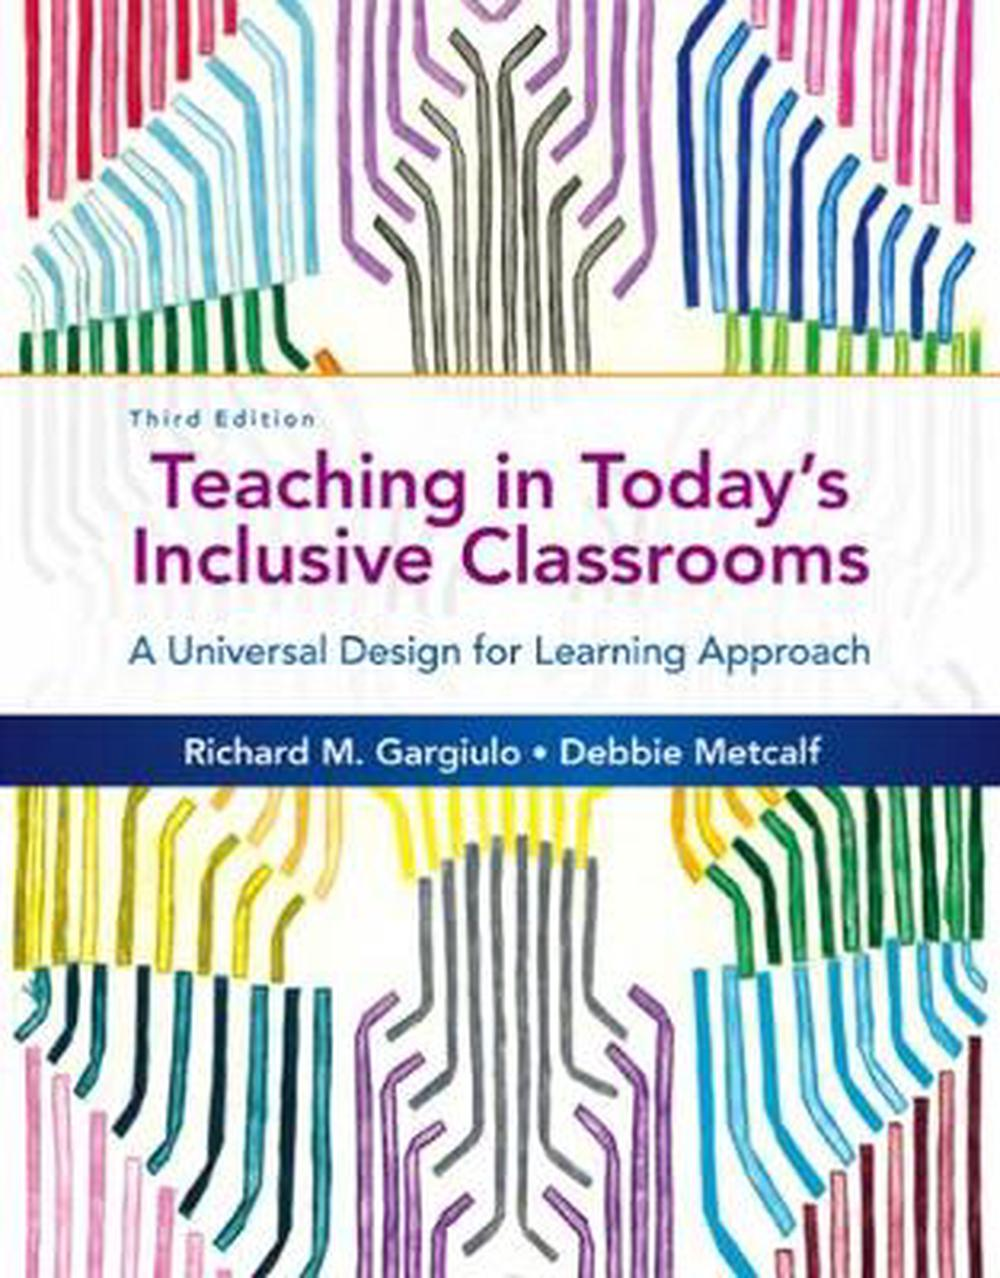 Teaching in Today's Inclusive Classrooms: A Universal Design for Learning Approach, 3rd Edition